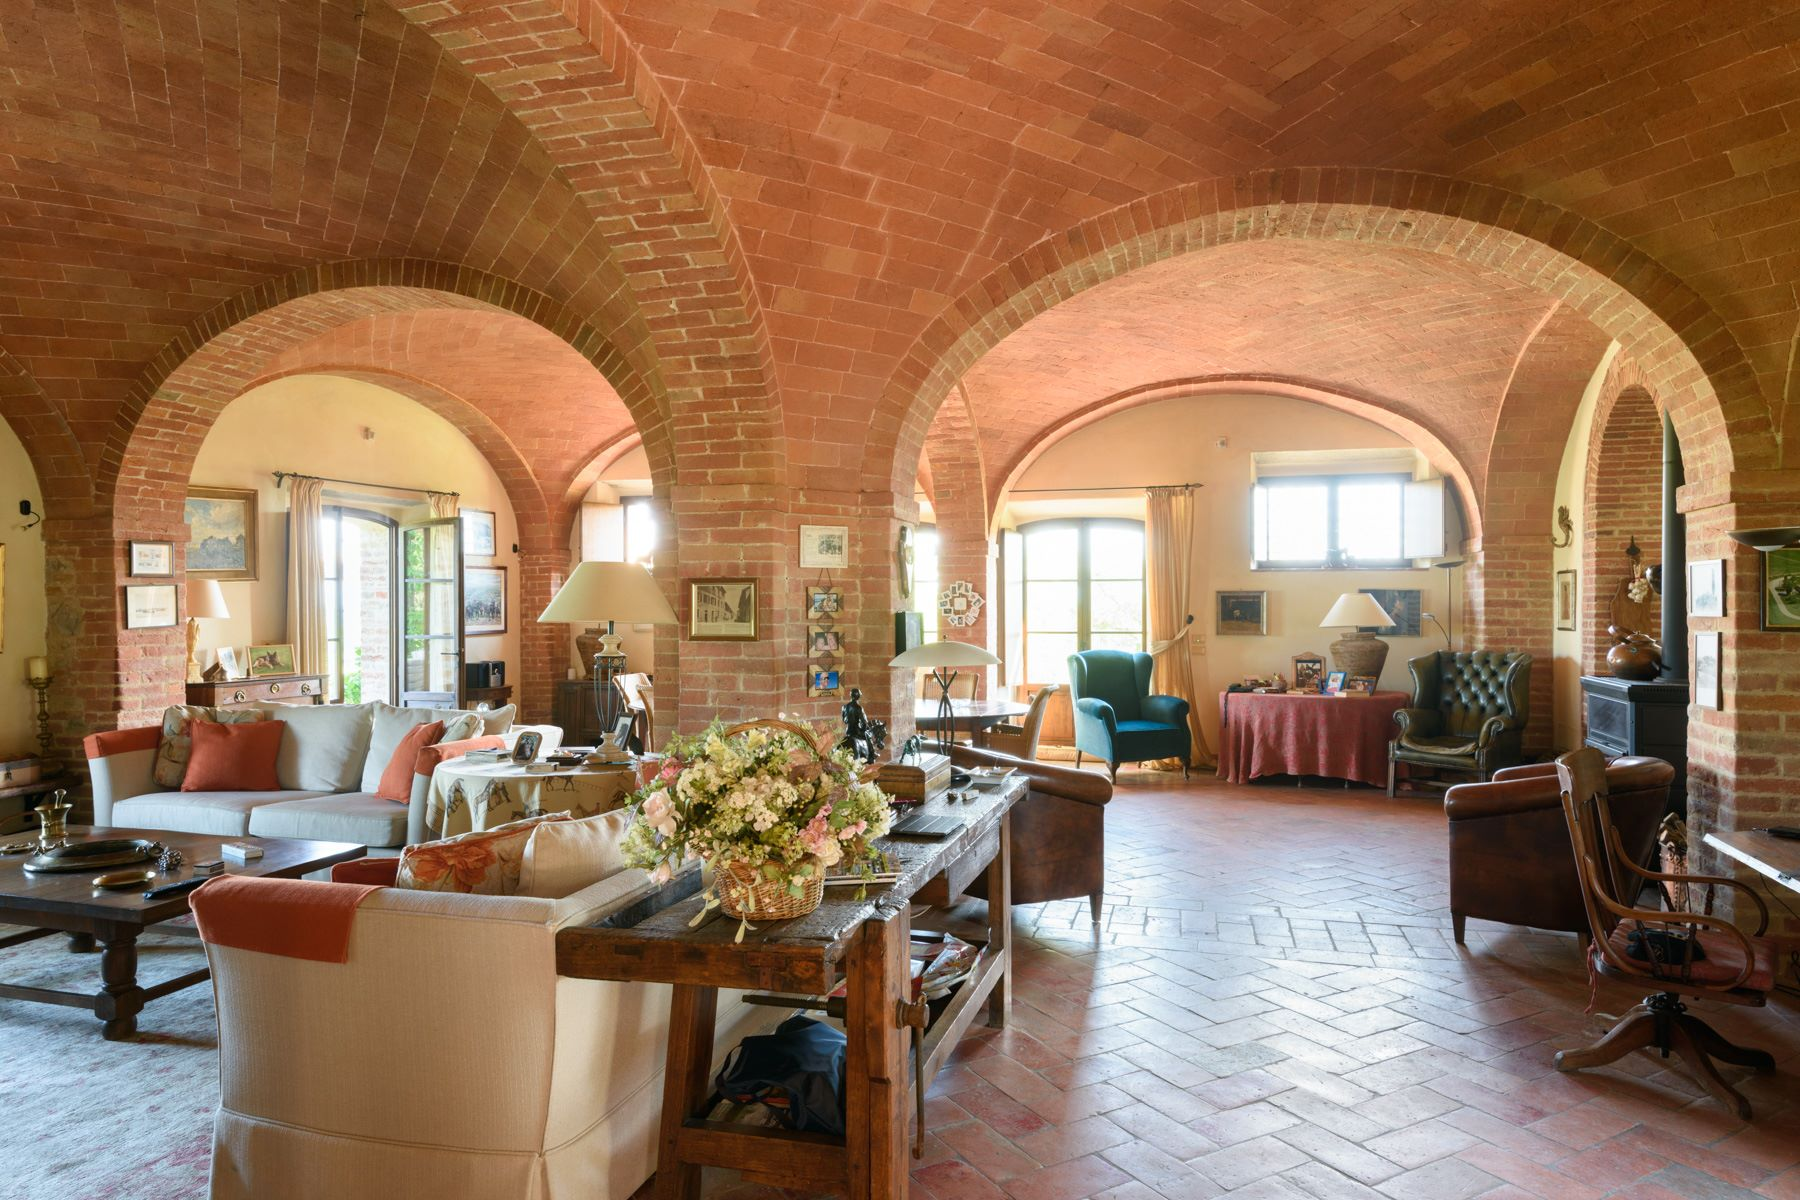 Additional photo for property listing at Tuscan countryhouse with 2,5 ha of vineyards Località Valcelle Torrita Di Siena, Siena 53049 Italy